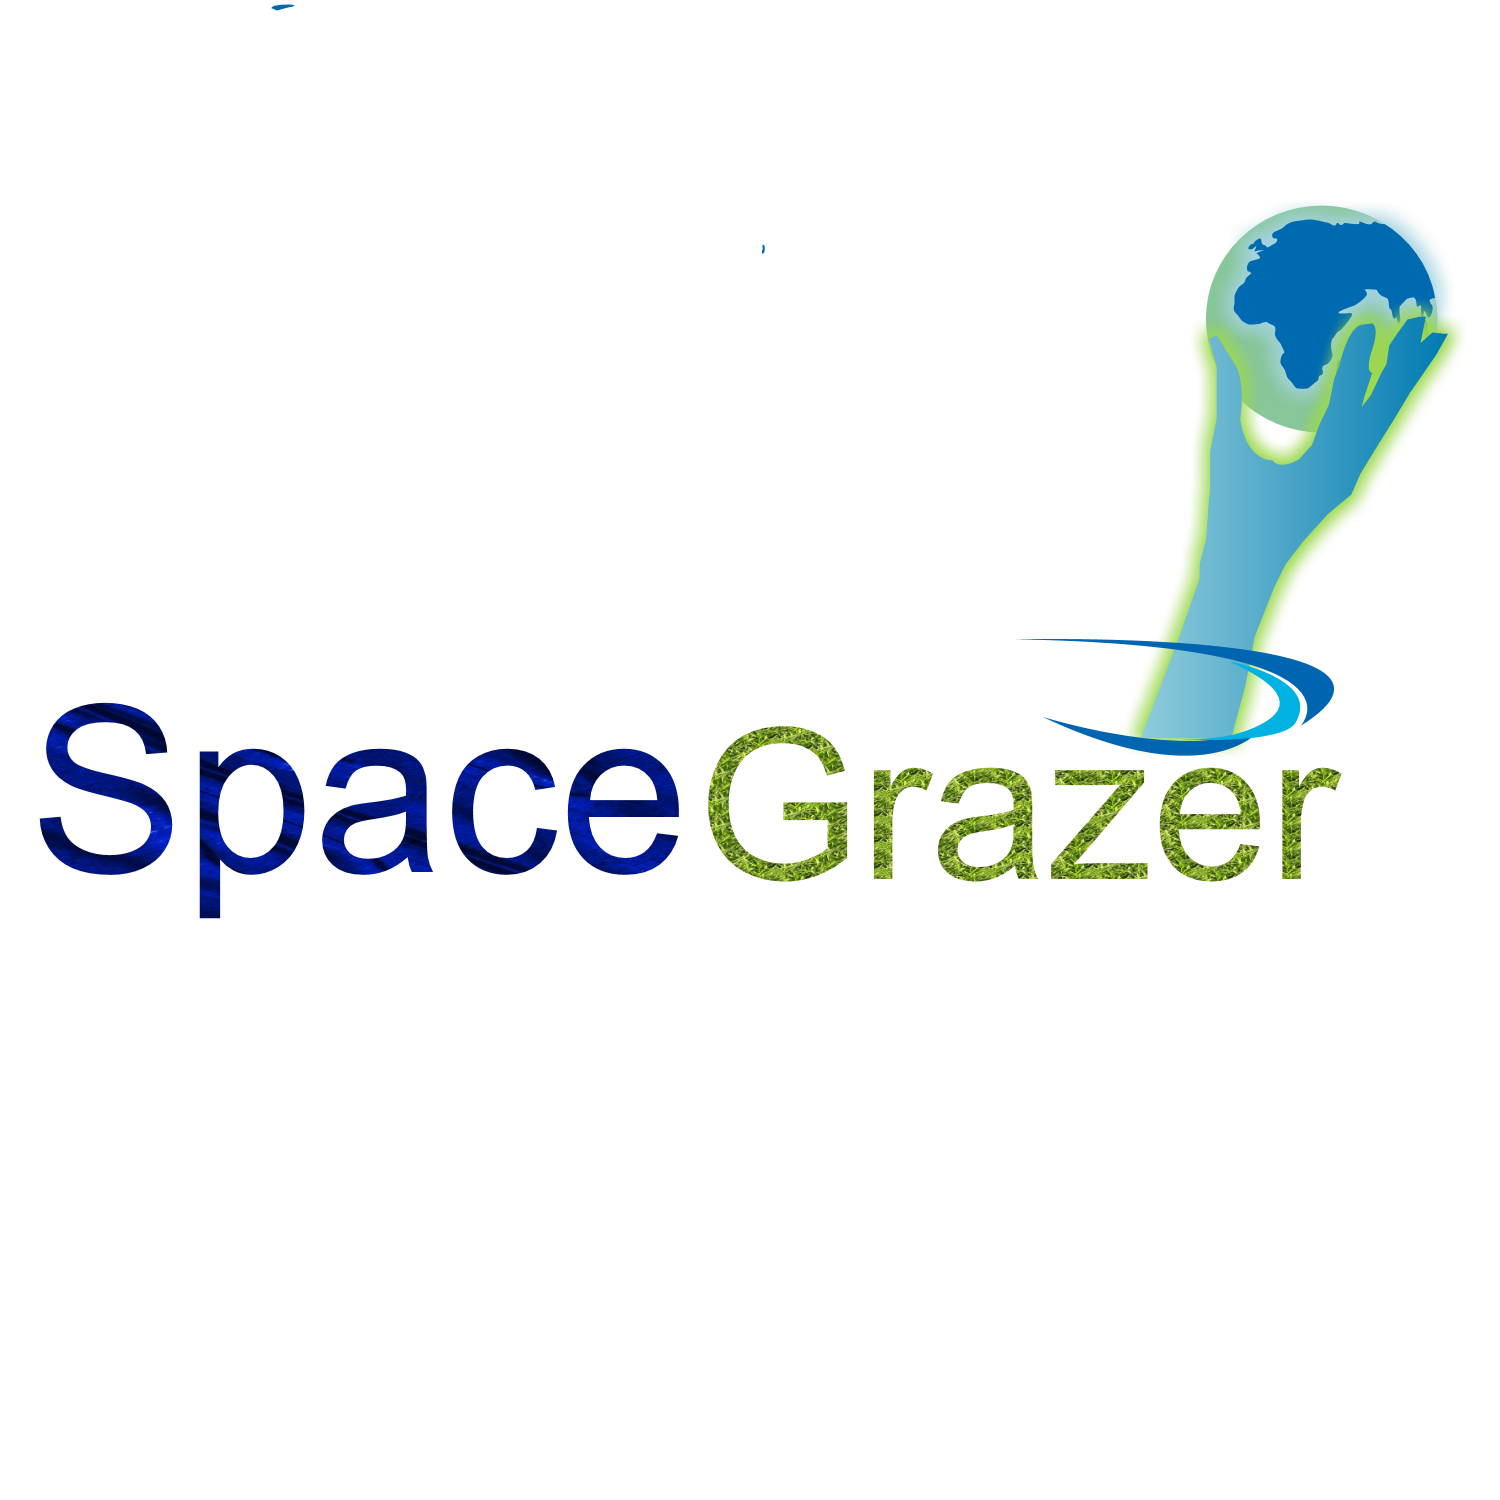 Logo Design by Melanie Fitzpatrick - Entry No. 72 in the Logo Design Contest Fun Logo Design for Spacegrazer.